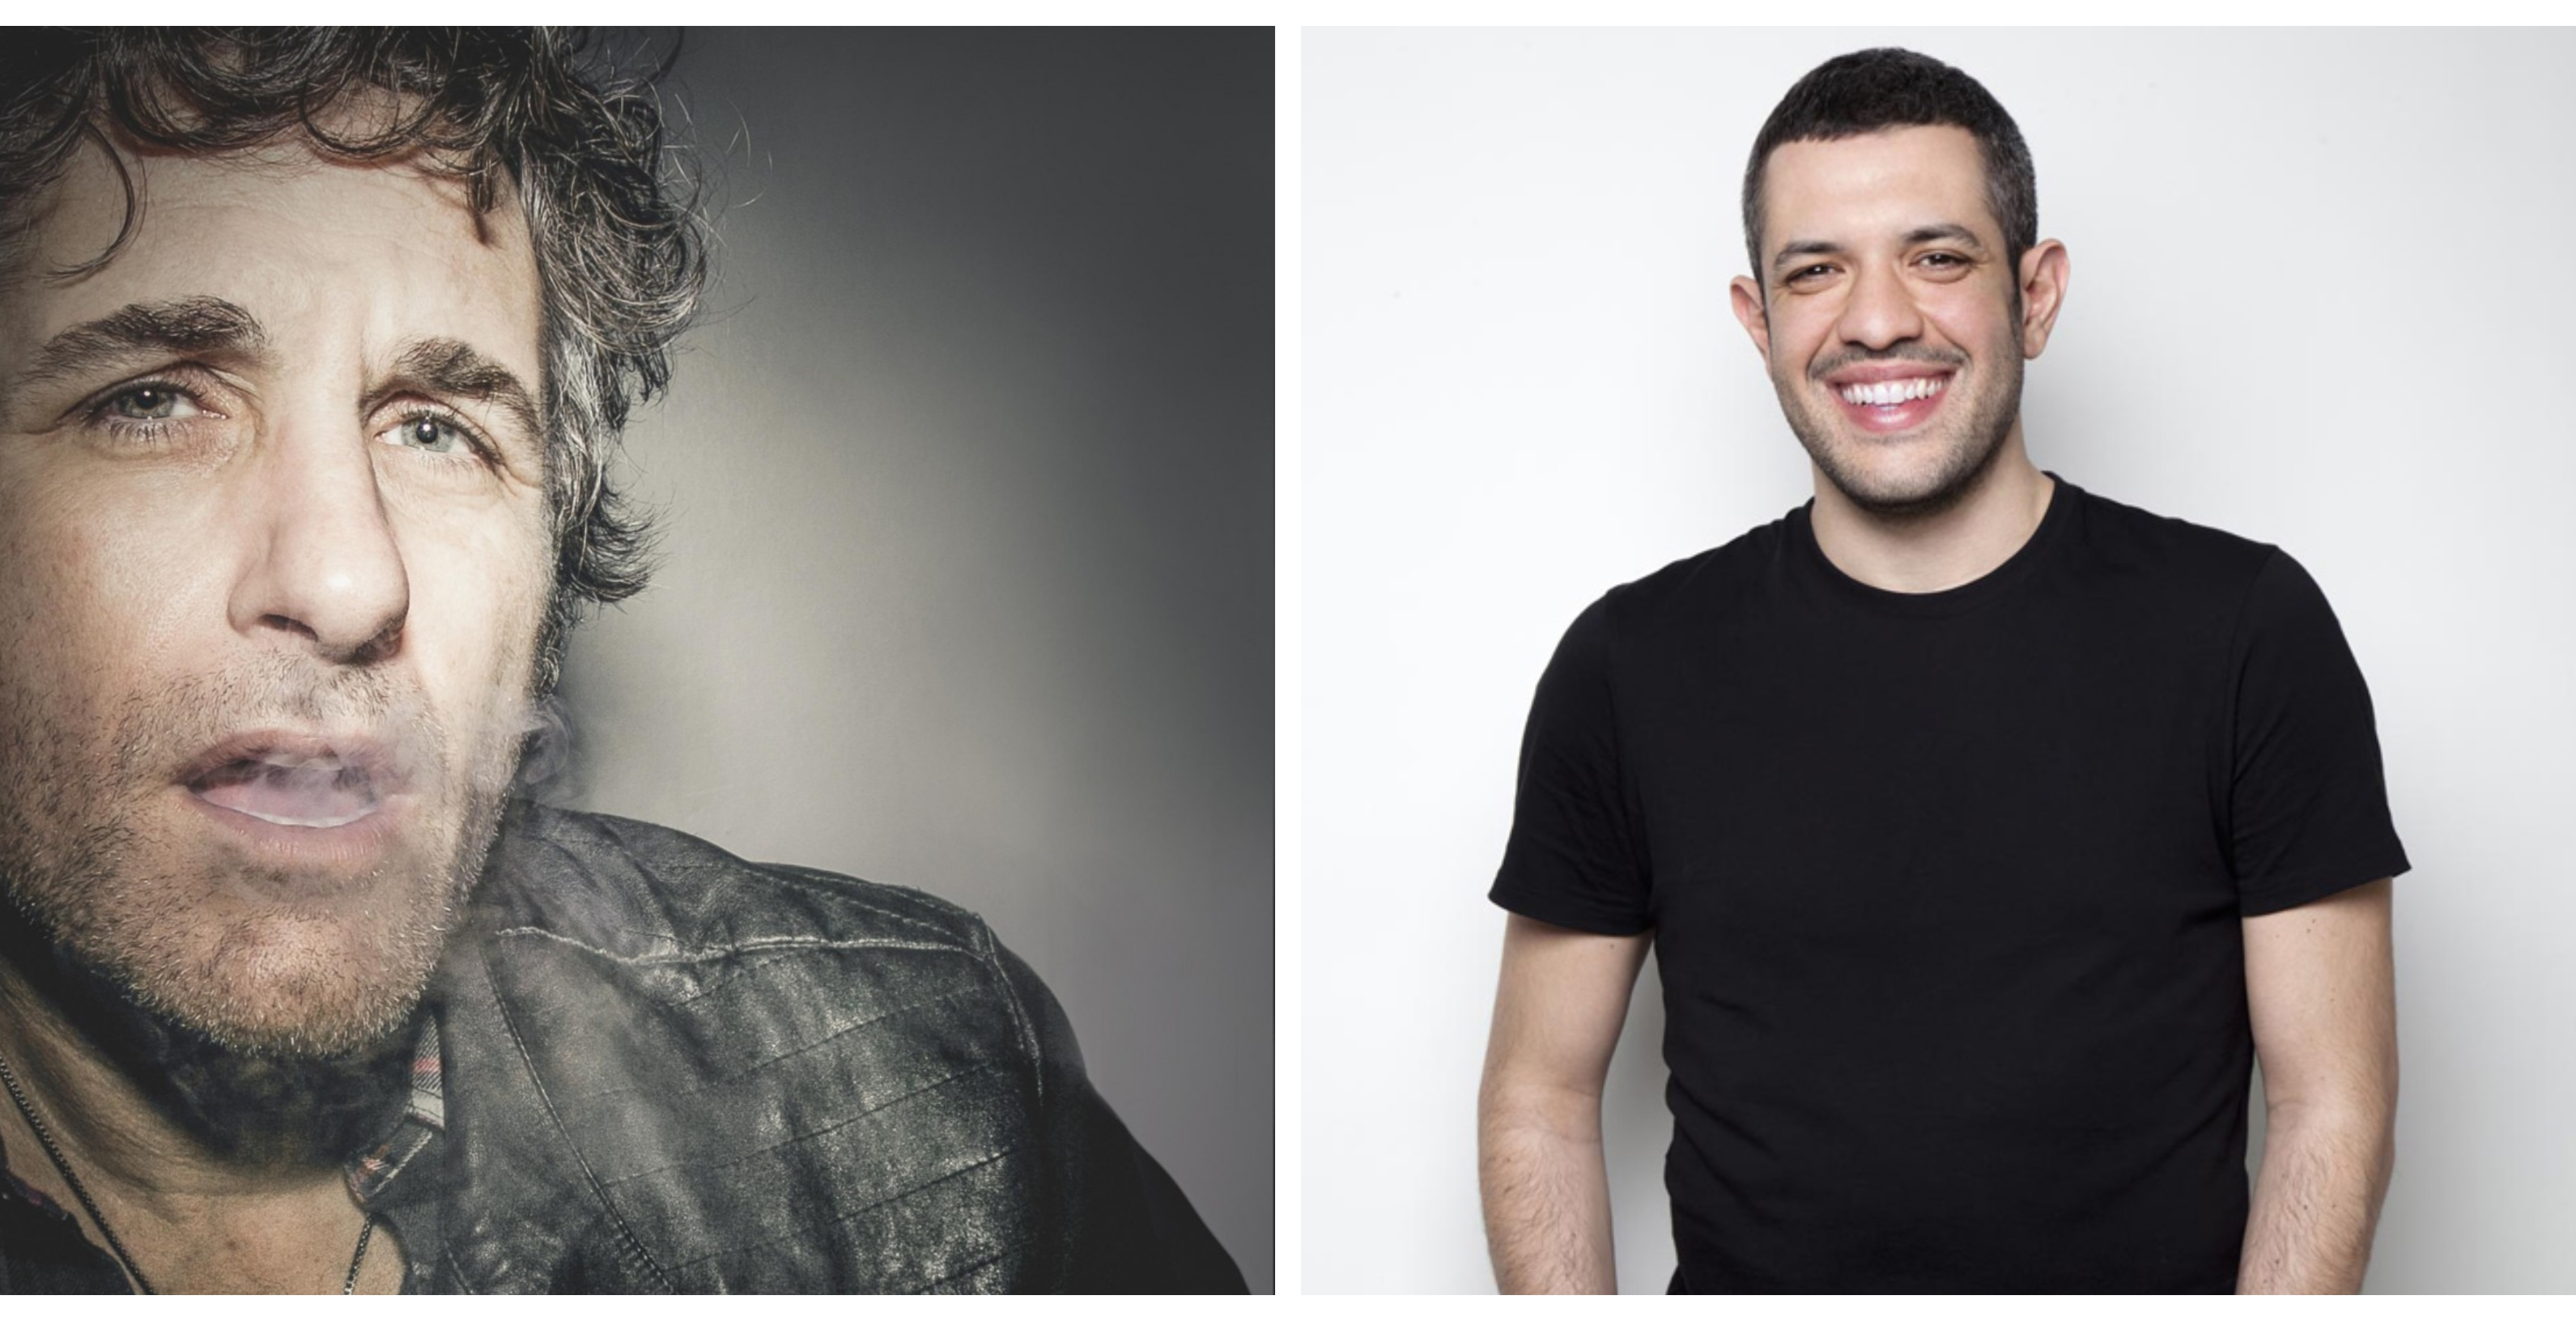 Good Ship Comedy presents Tom Stade & Francesco de Carlo